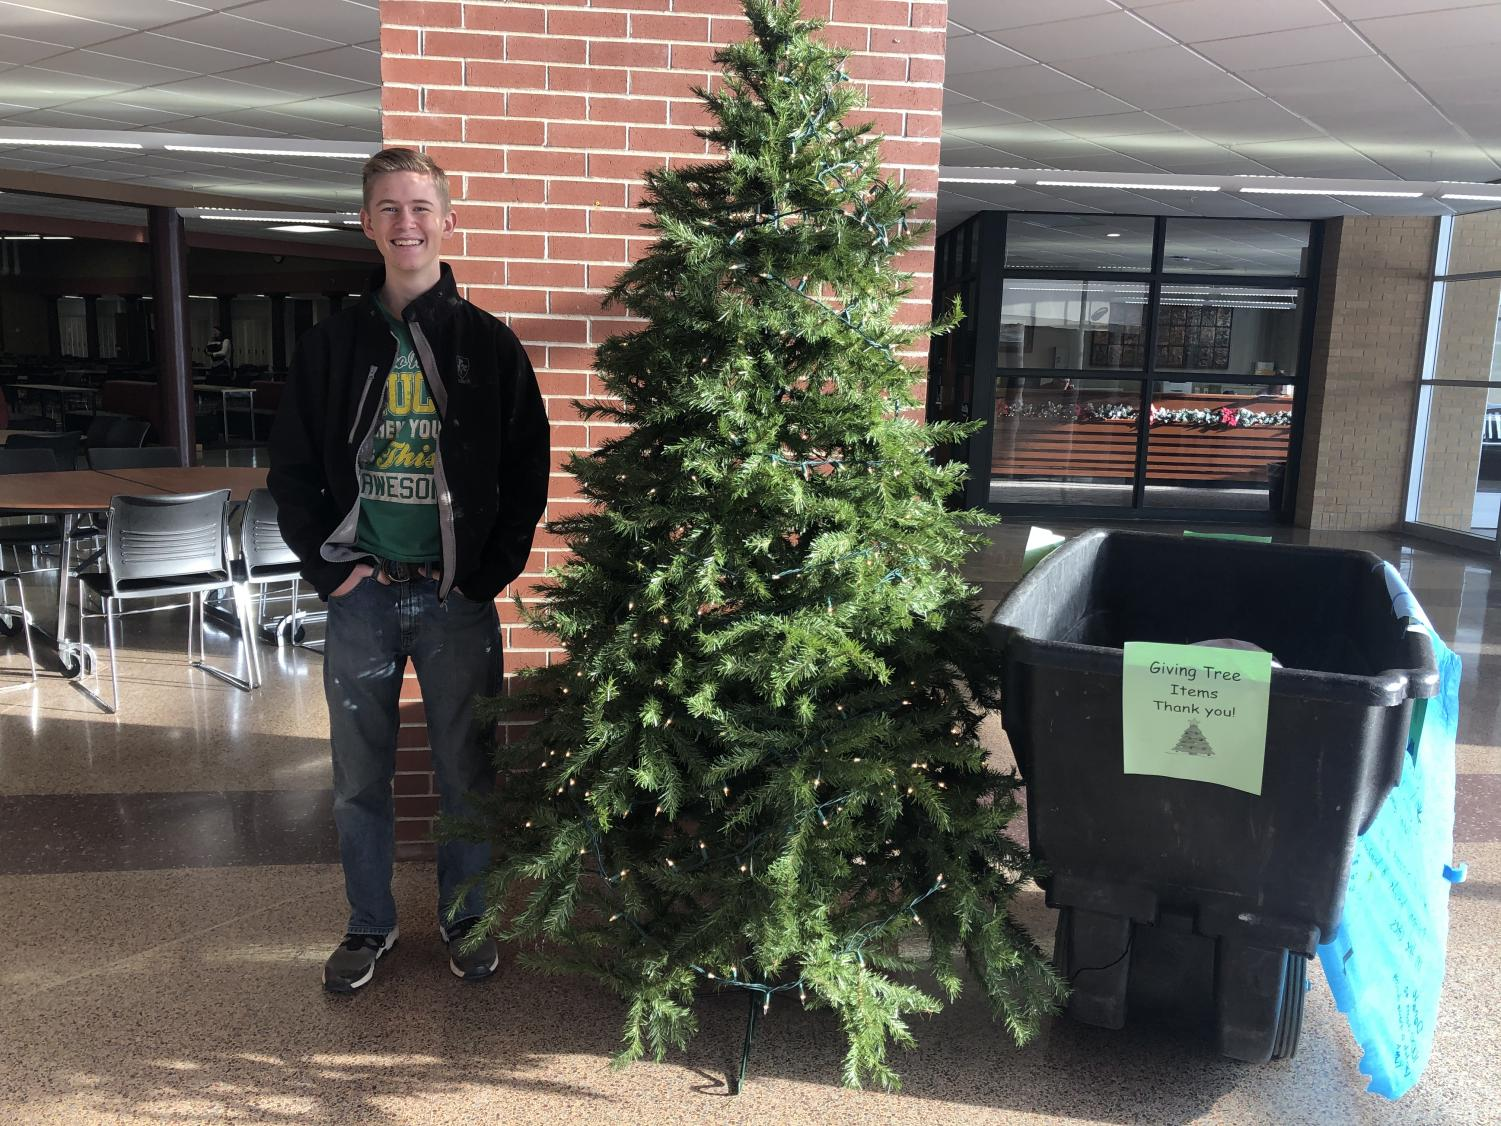 Ryan Schlichting, student  council president, poses next to the Giving Tree.